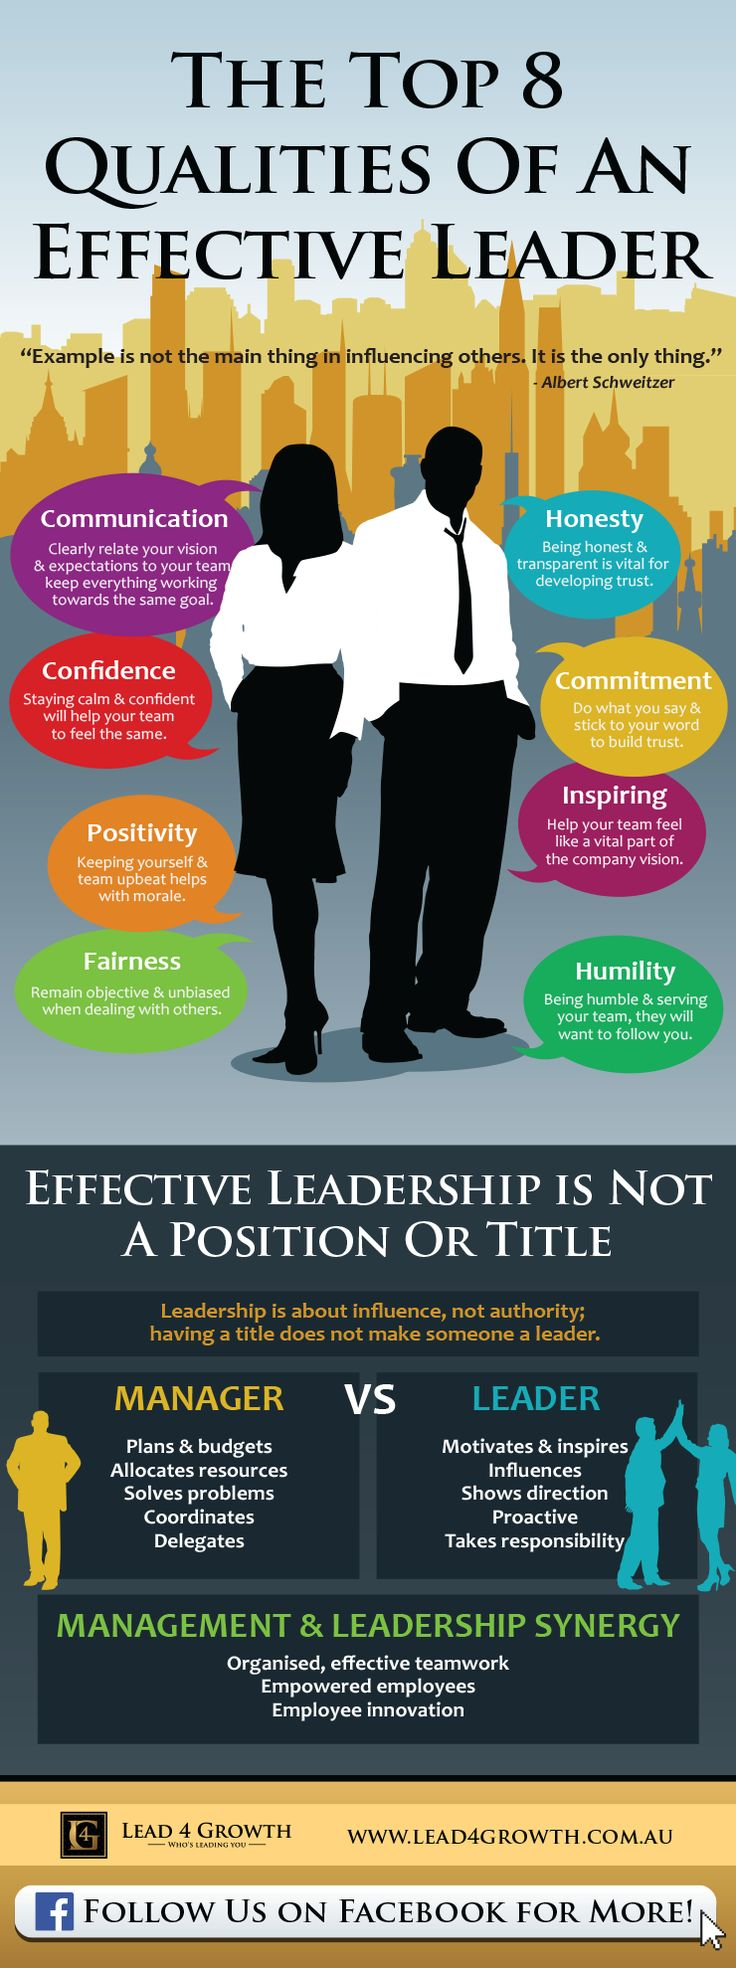 Top 8 Qualities of an Effective Leader